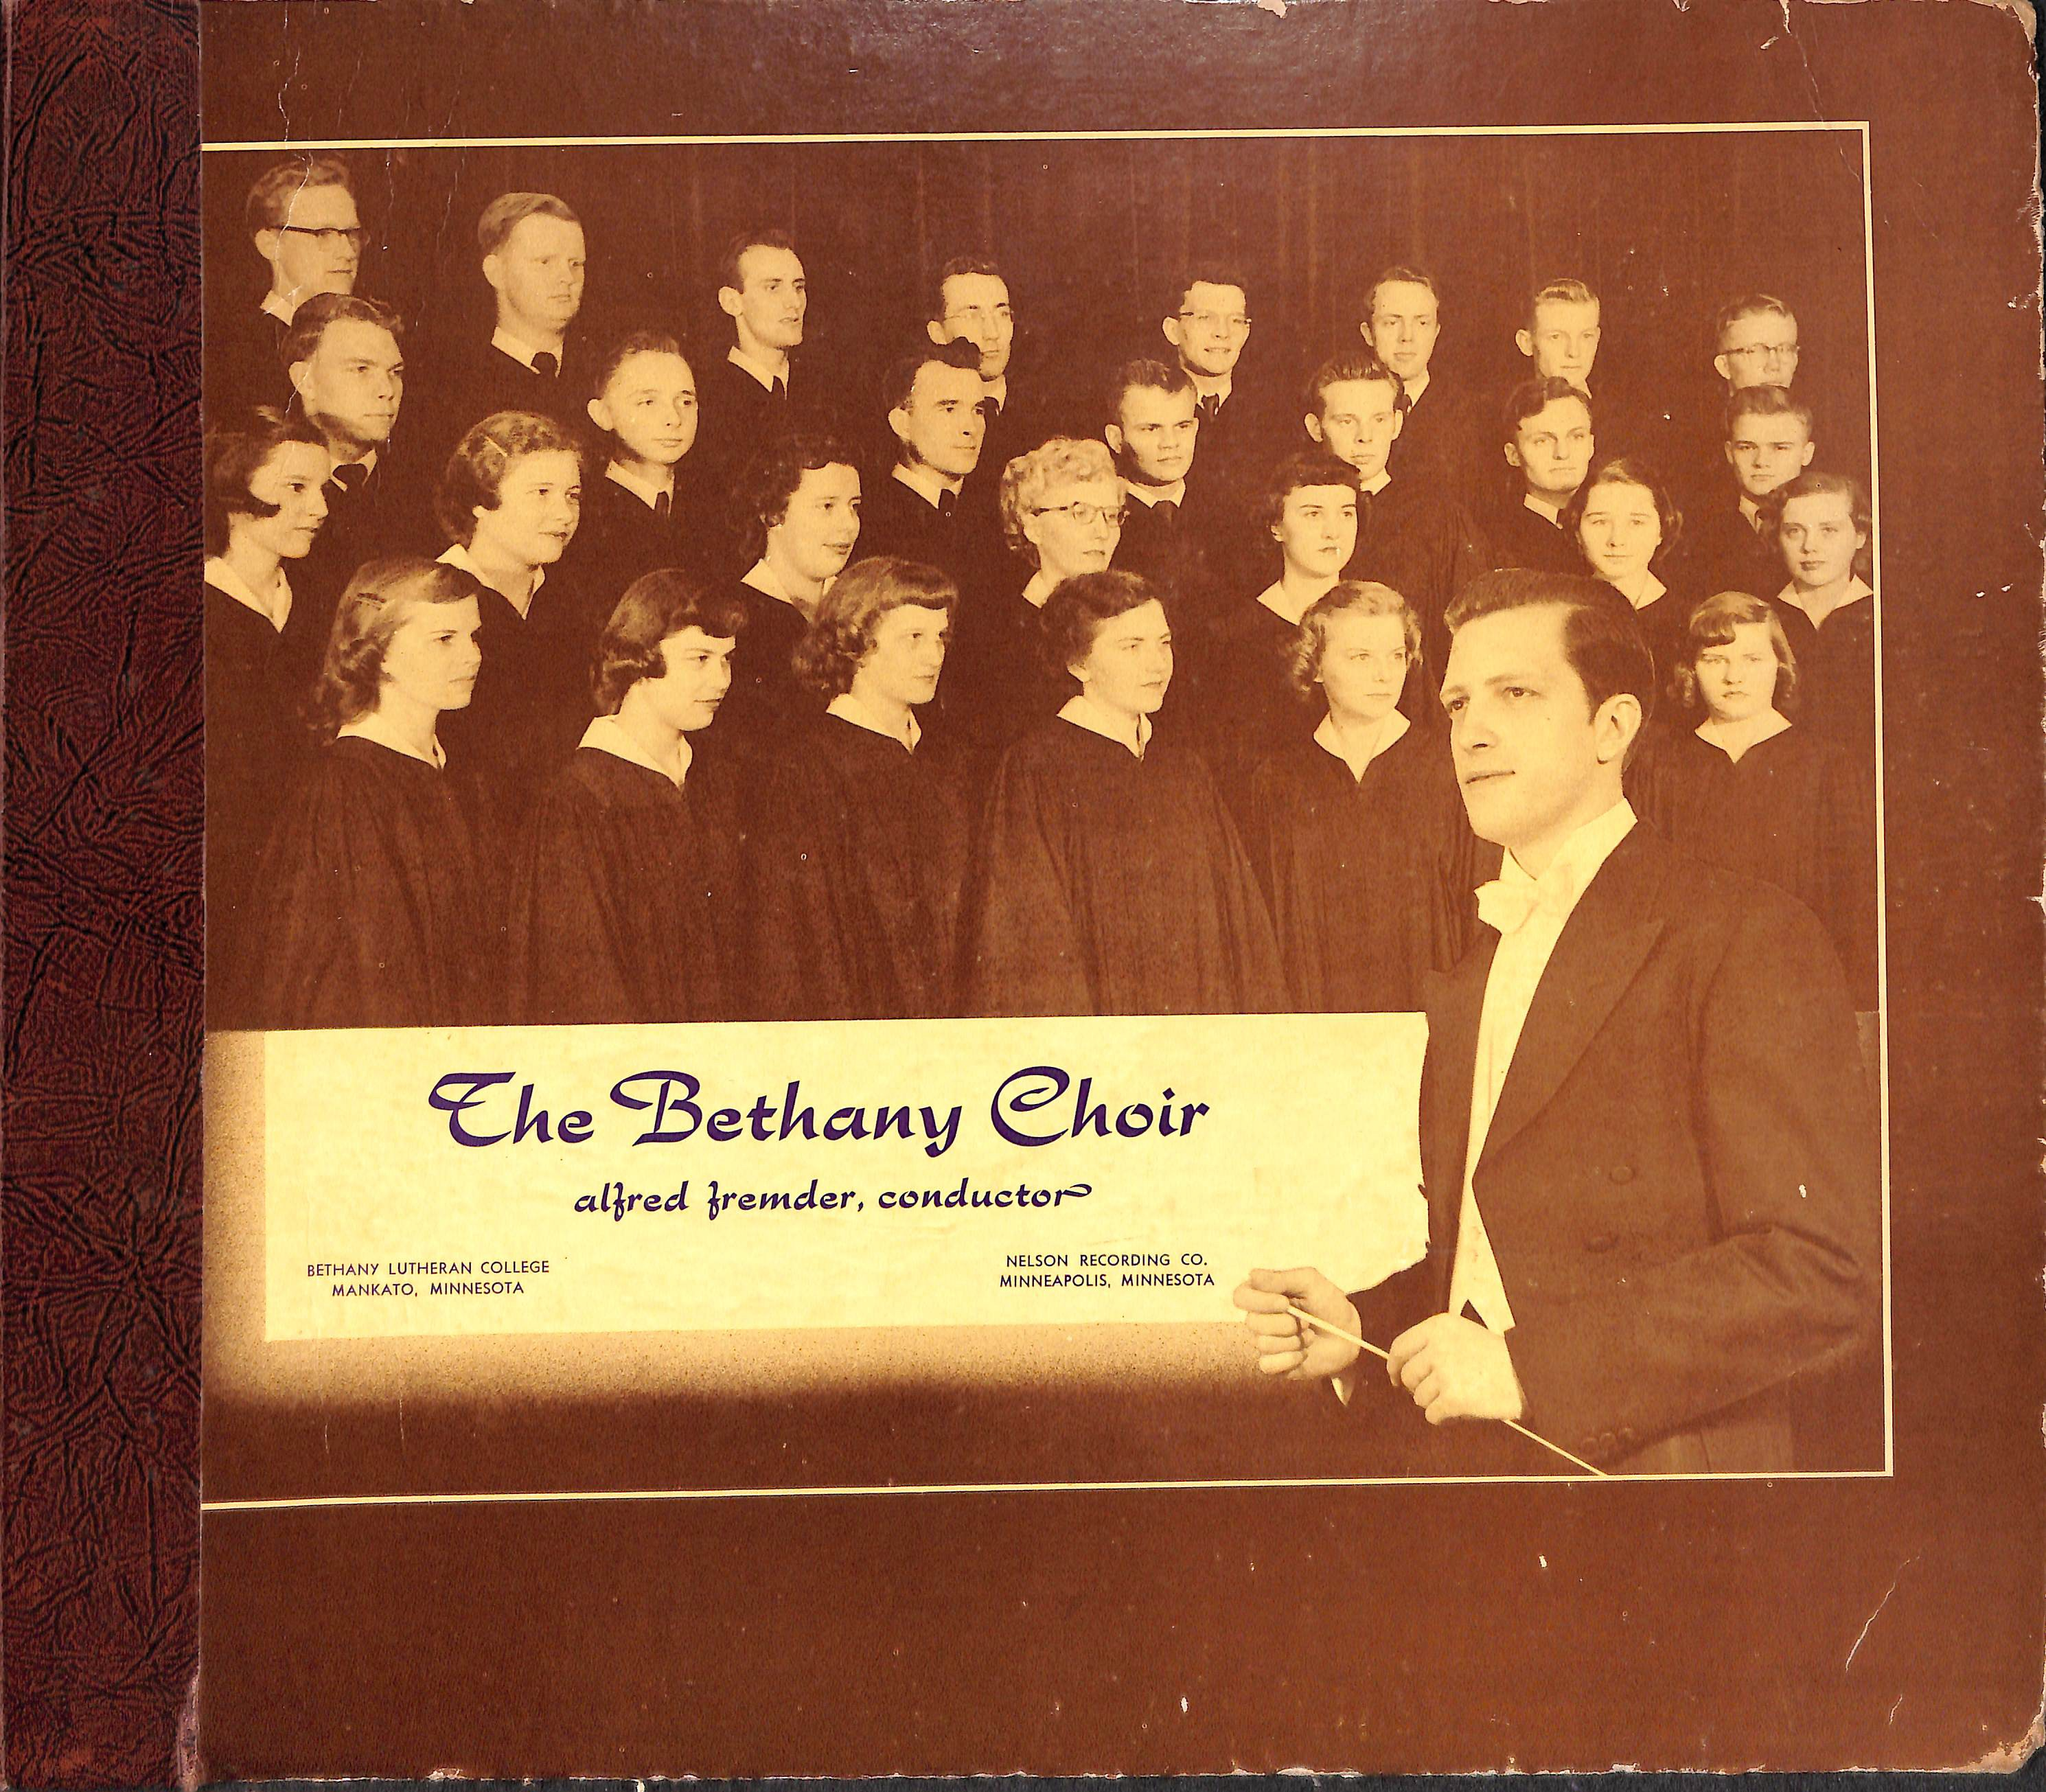 The Bethany Choir 1951: Sing Ye to the Lord